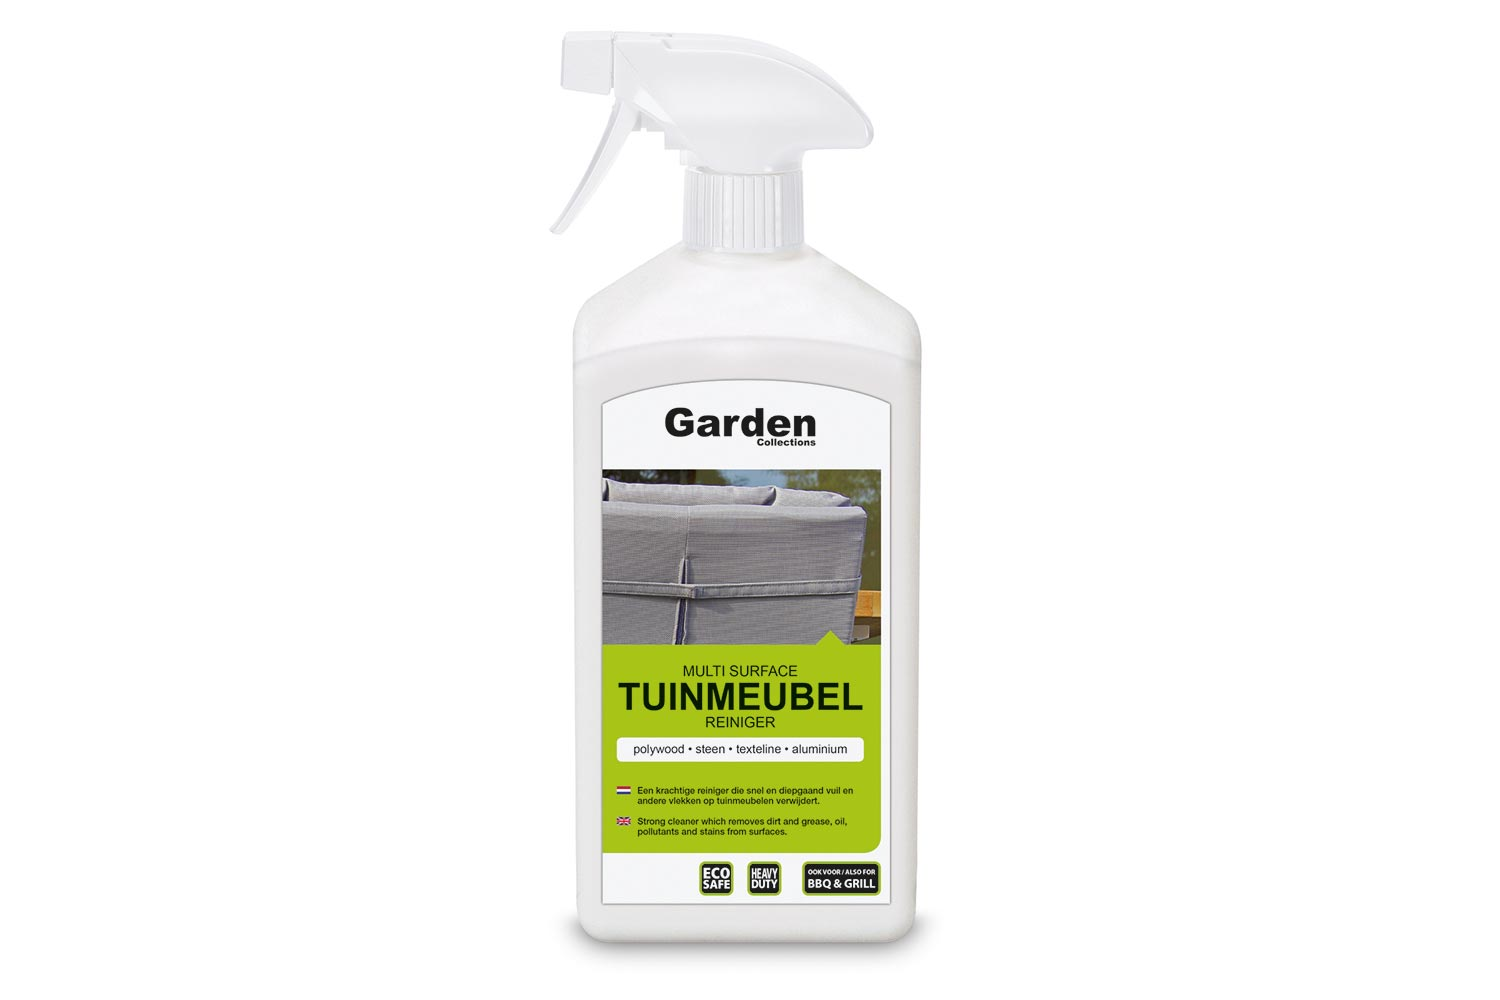 Garden Collections Multi Surafce Reiniger 1 ltr